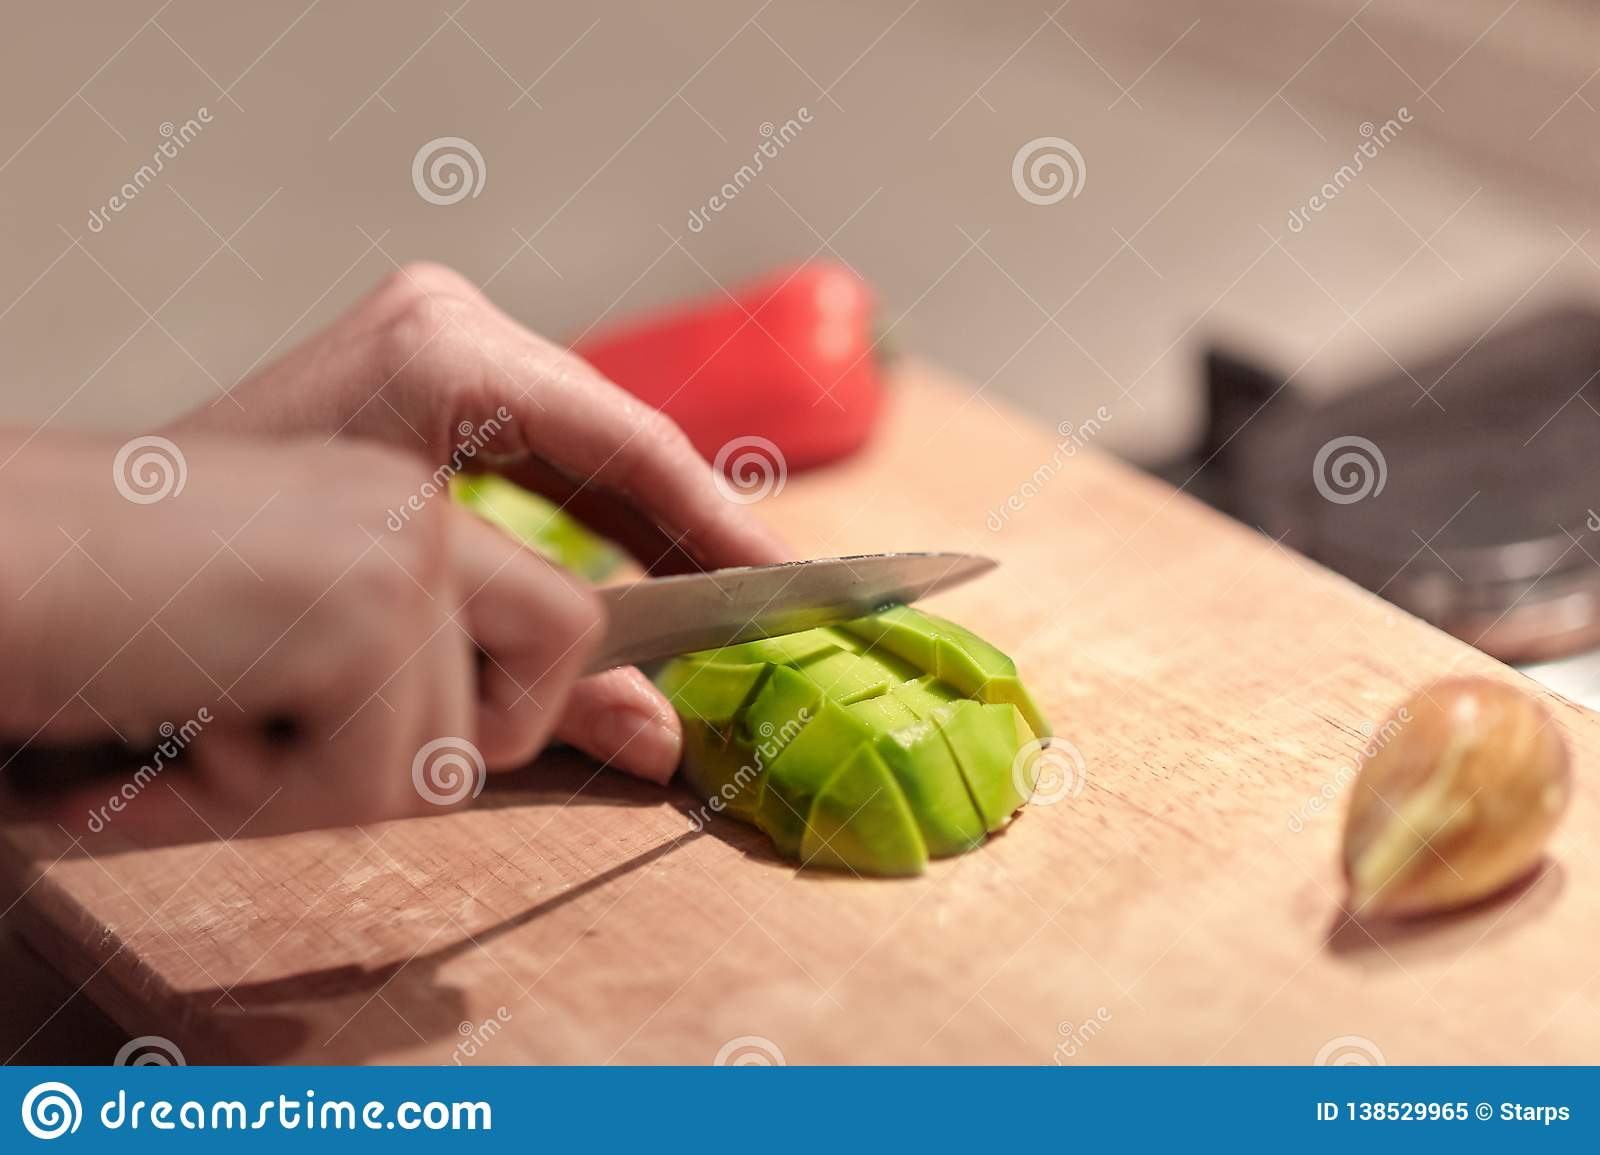 Female hands cutting fresh organic avocado with knife on wooden board in kitchen. Red bell pepper on background.